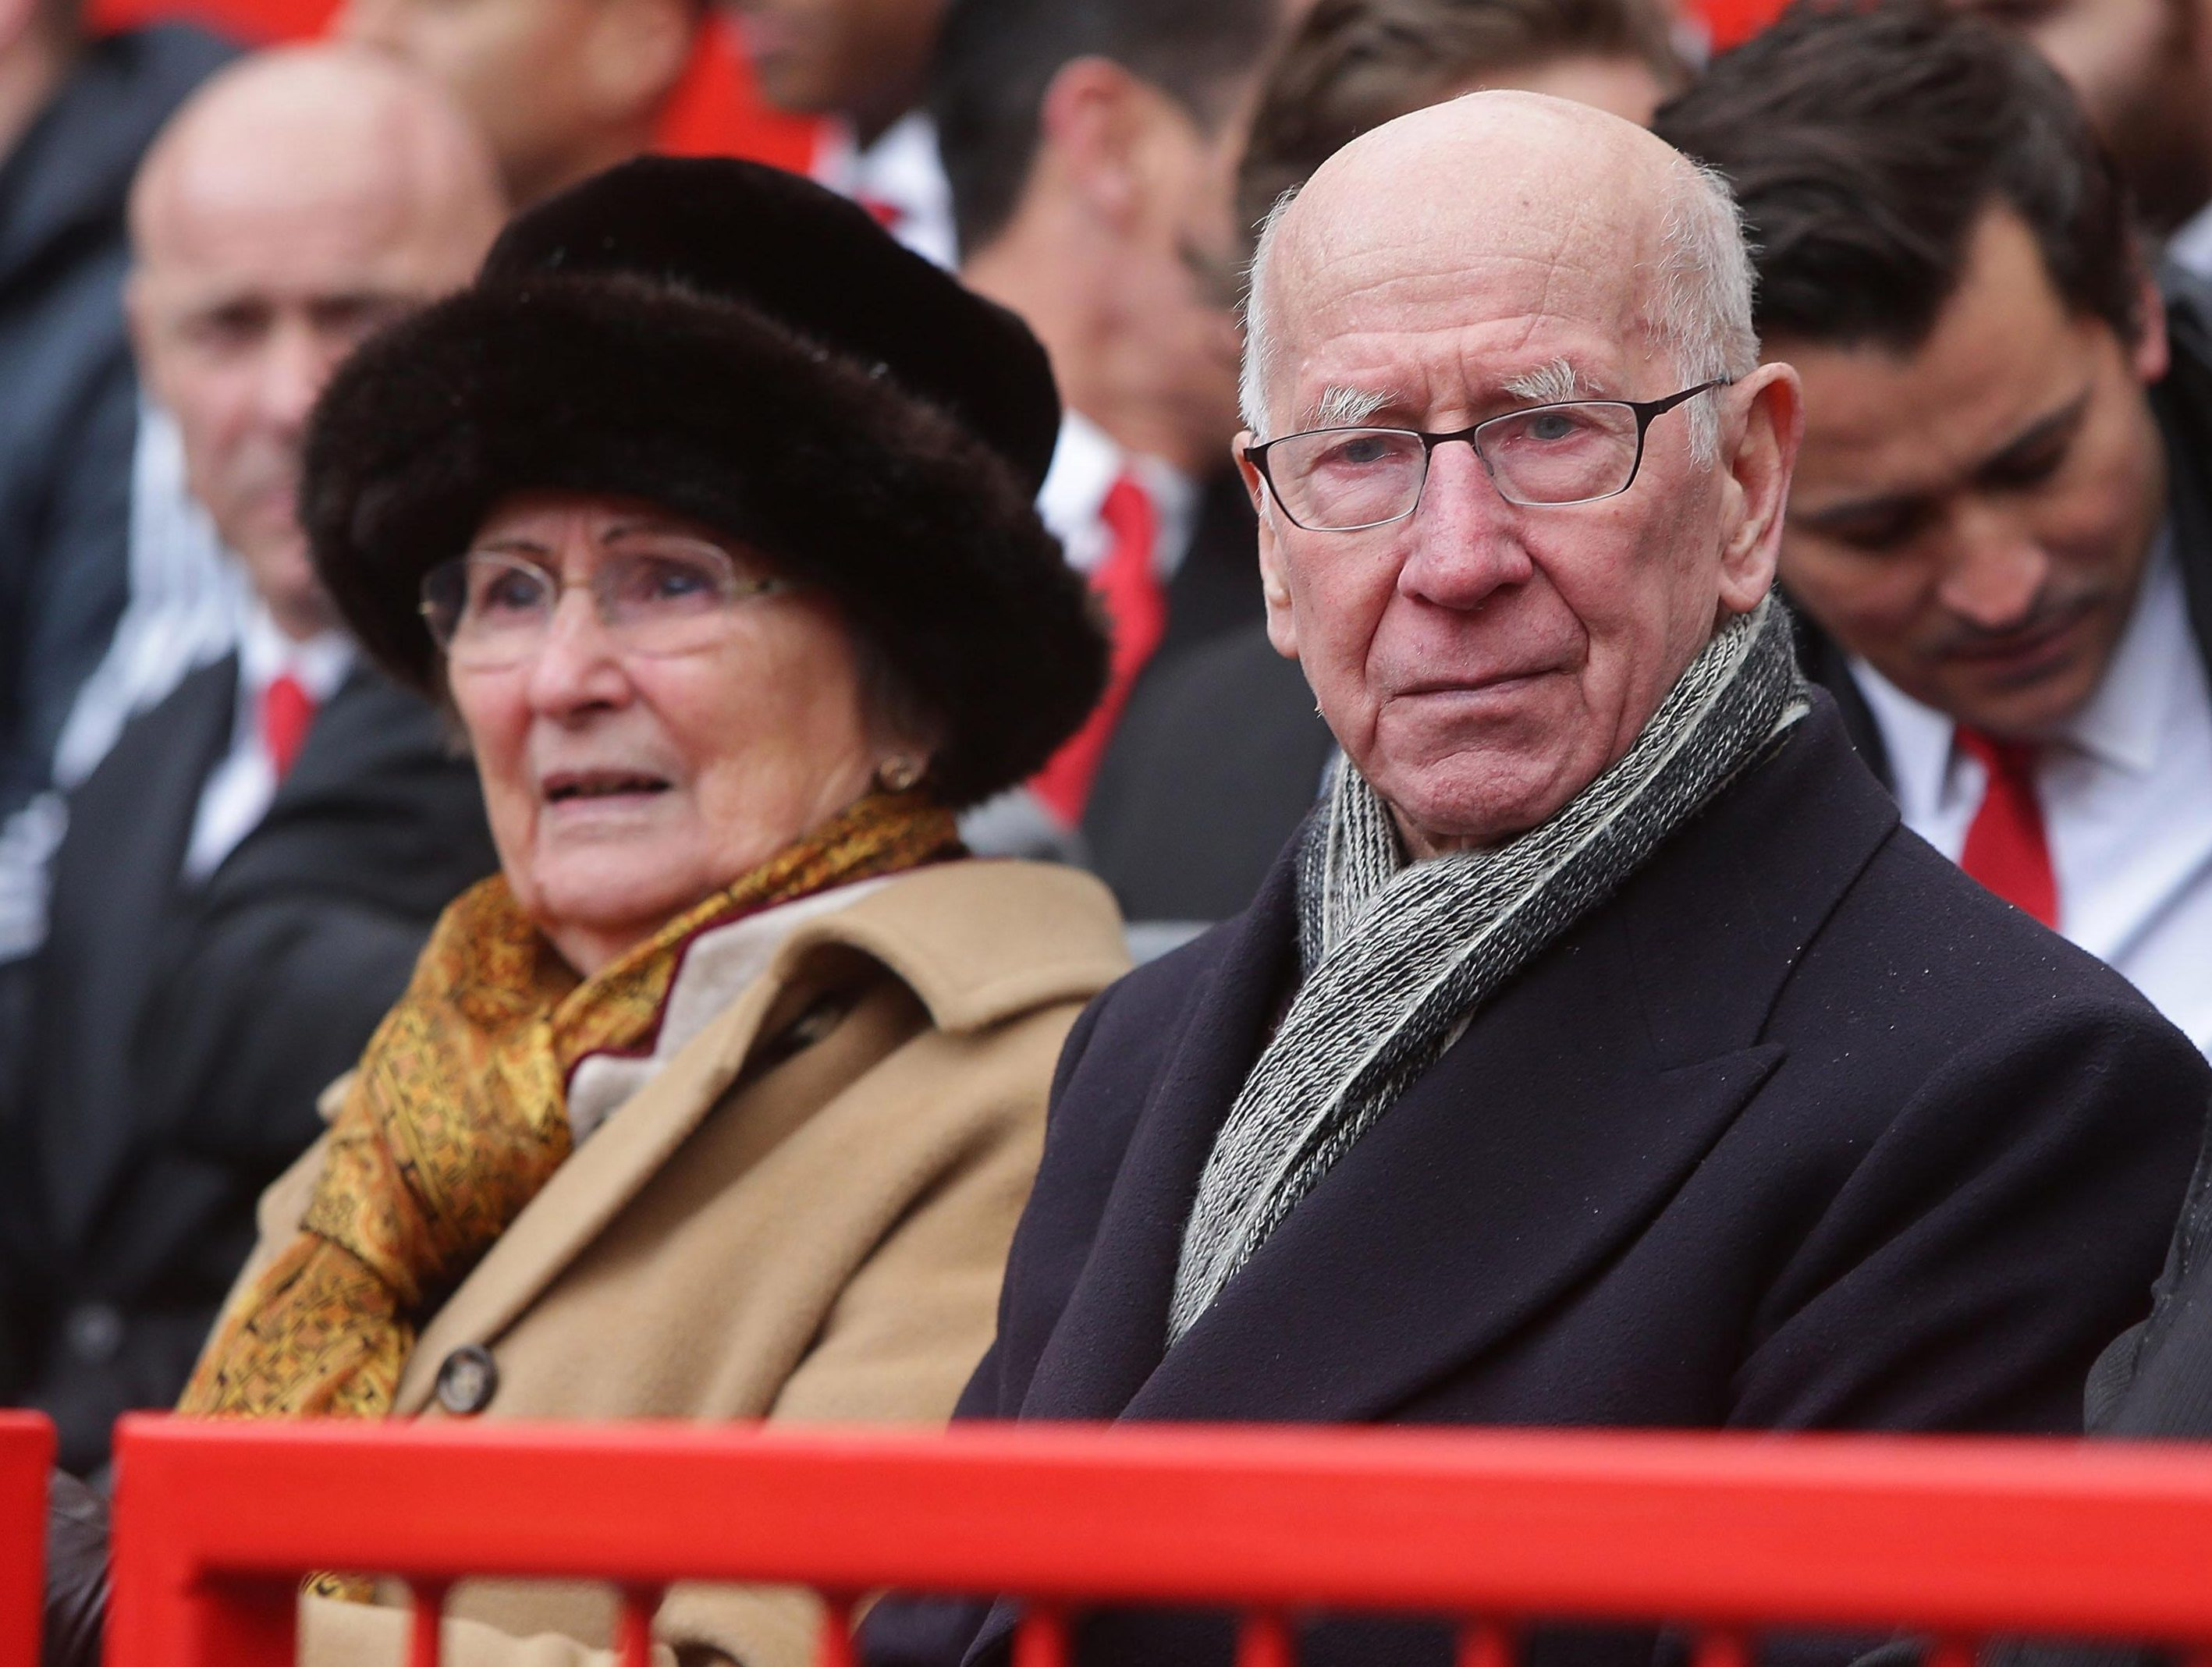 Sir Bobby Charlton and Lady Norma Charlton attend a service to commemorate the 60th anniversary of the Munich Air Disaster